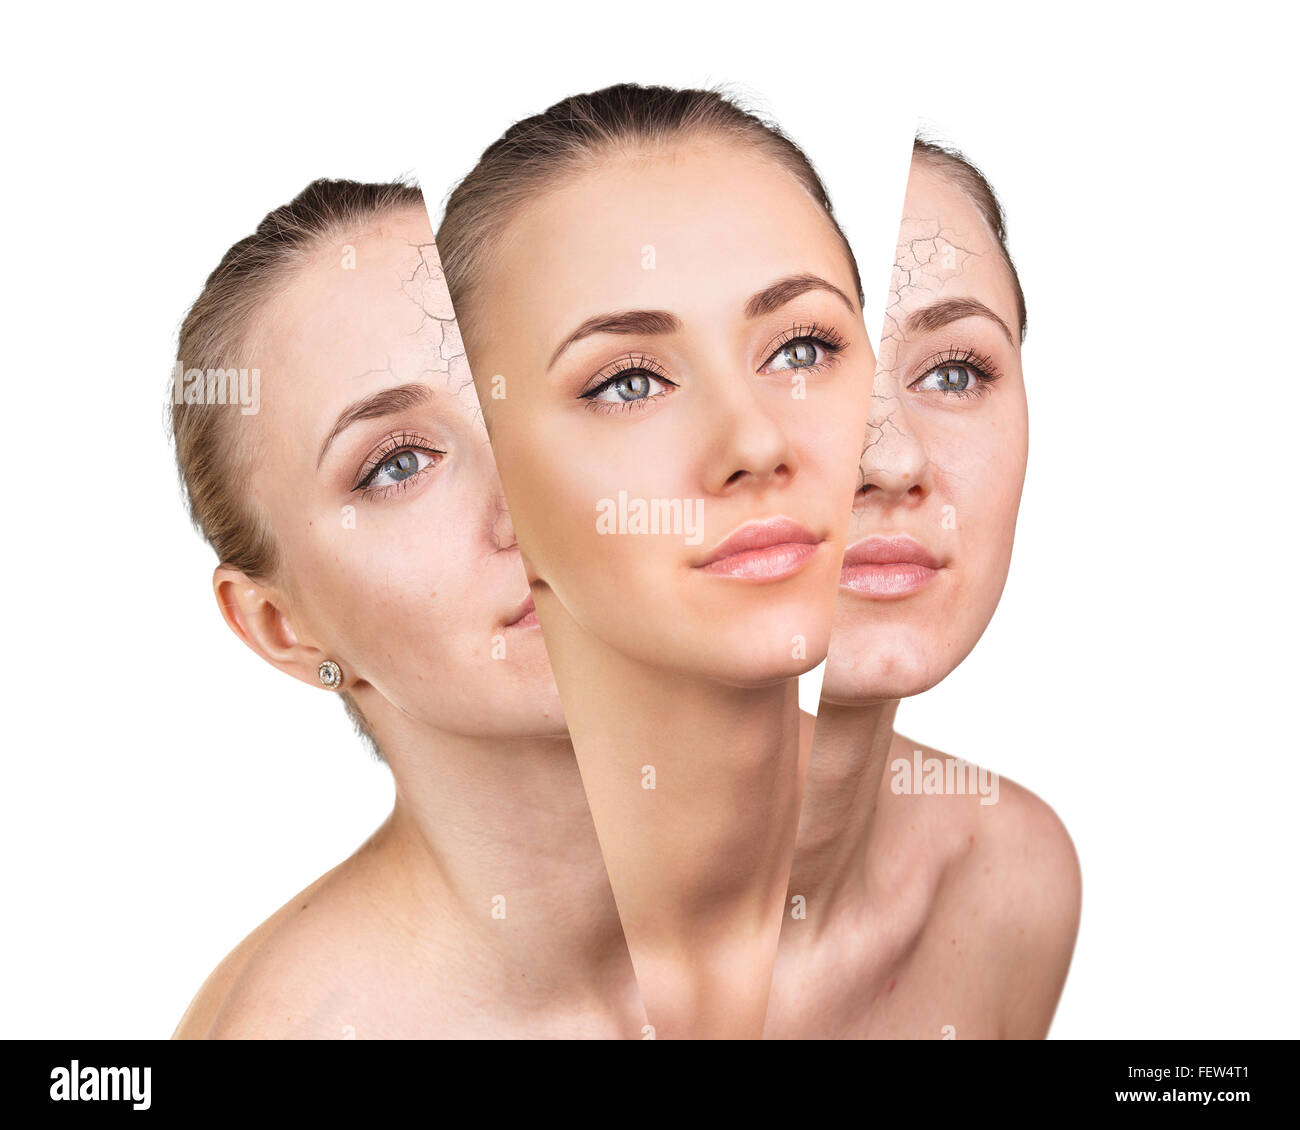 Beauty Concept Before And After Contrast Stock Photo